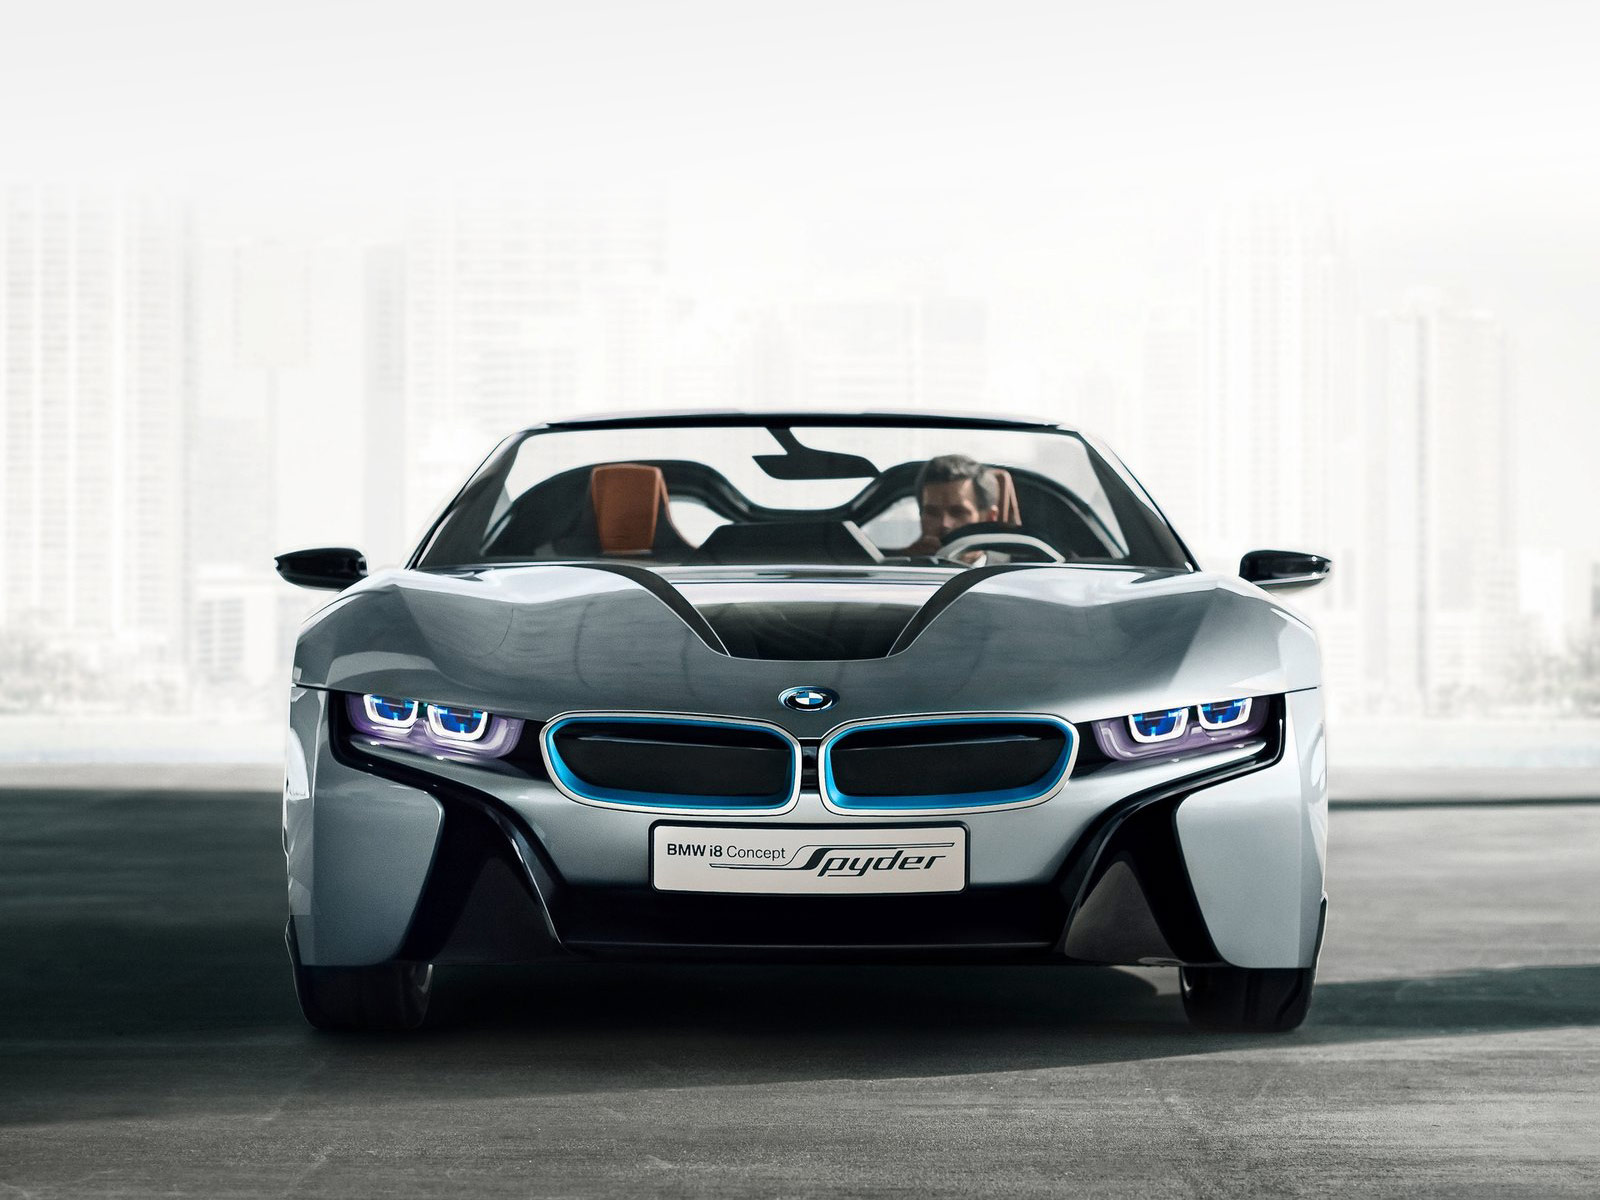 gambar mobil bmw i8 spyder concept 2013. Black Bedroom Furniture Sets. Home Design Ideas